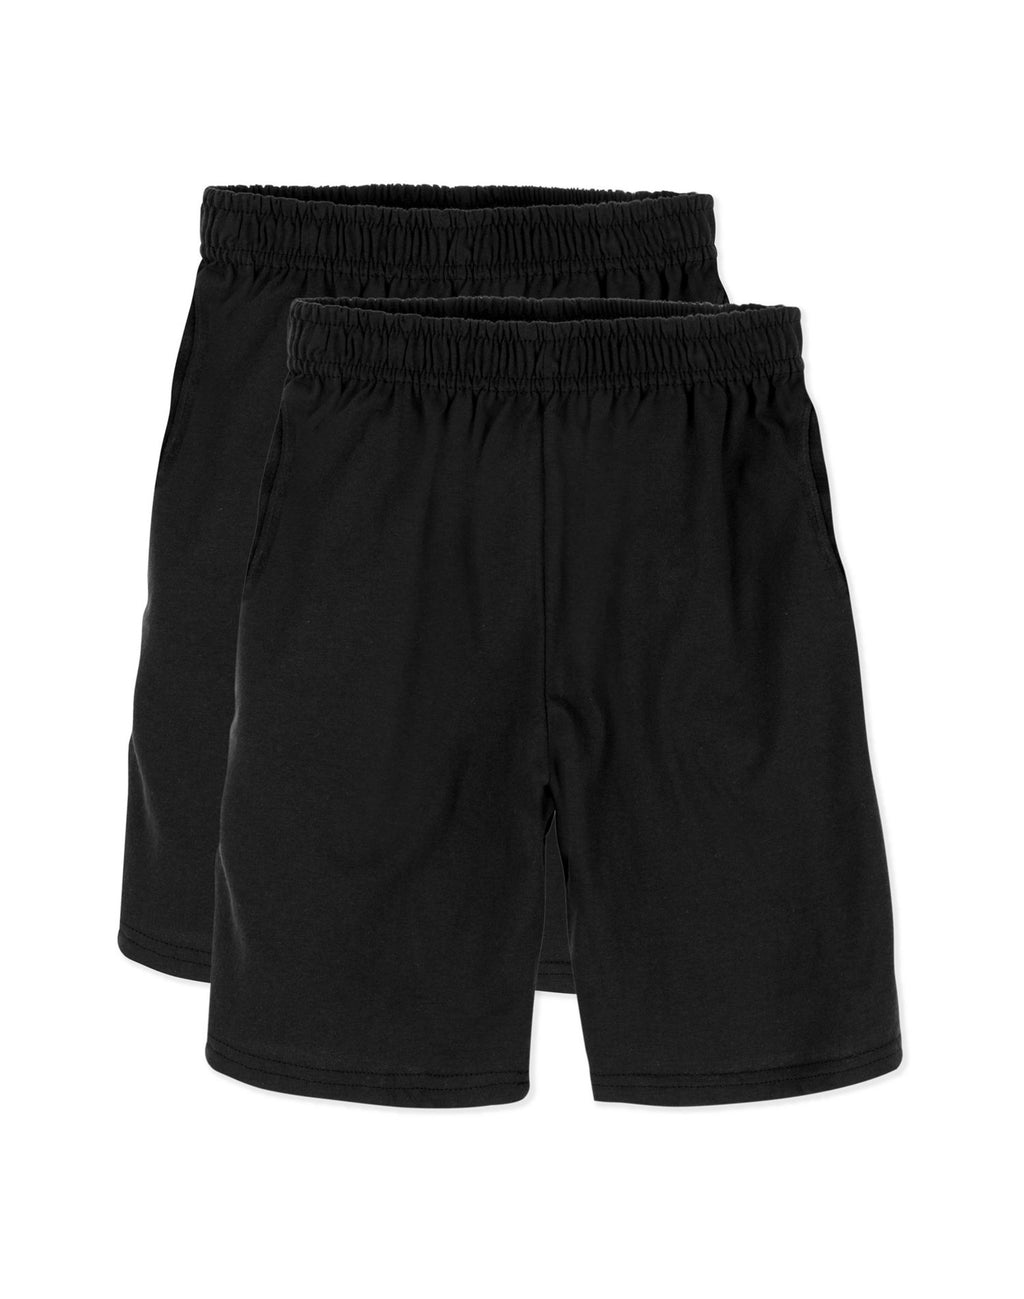 Hanes Boys ComfortSoft Jersey Pocket Short Value 2-Pack